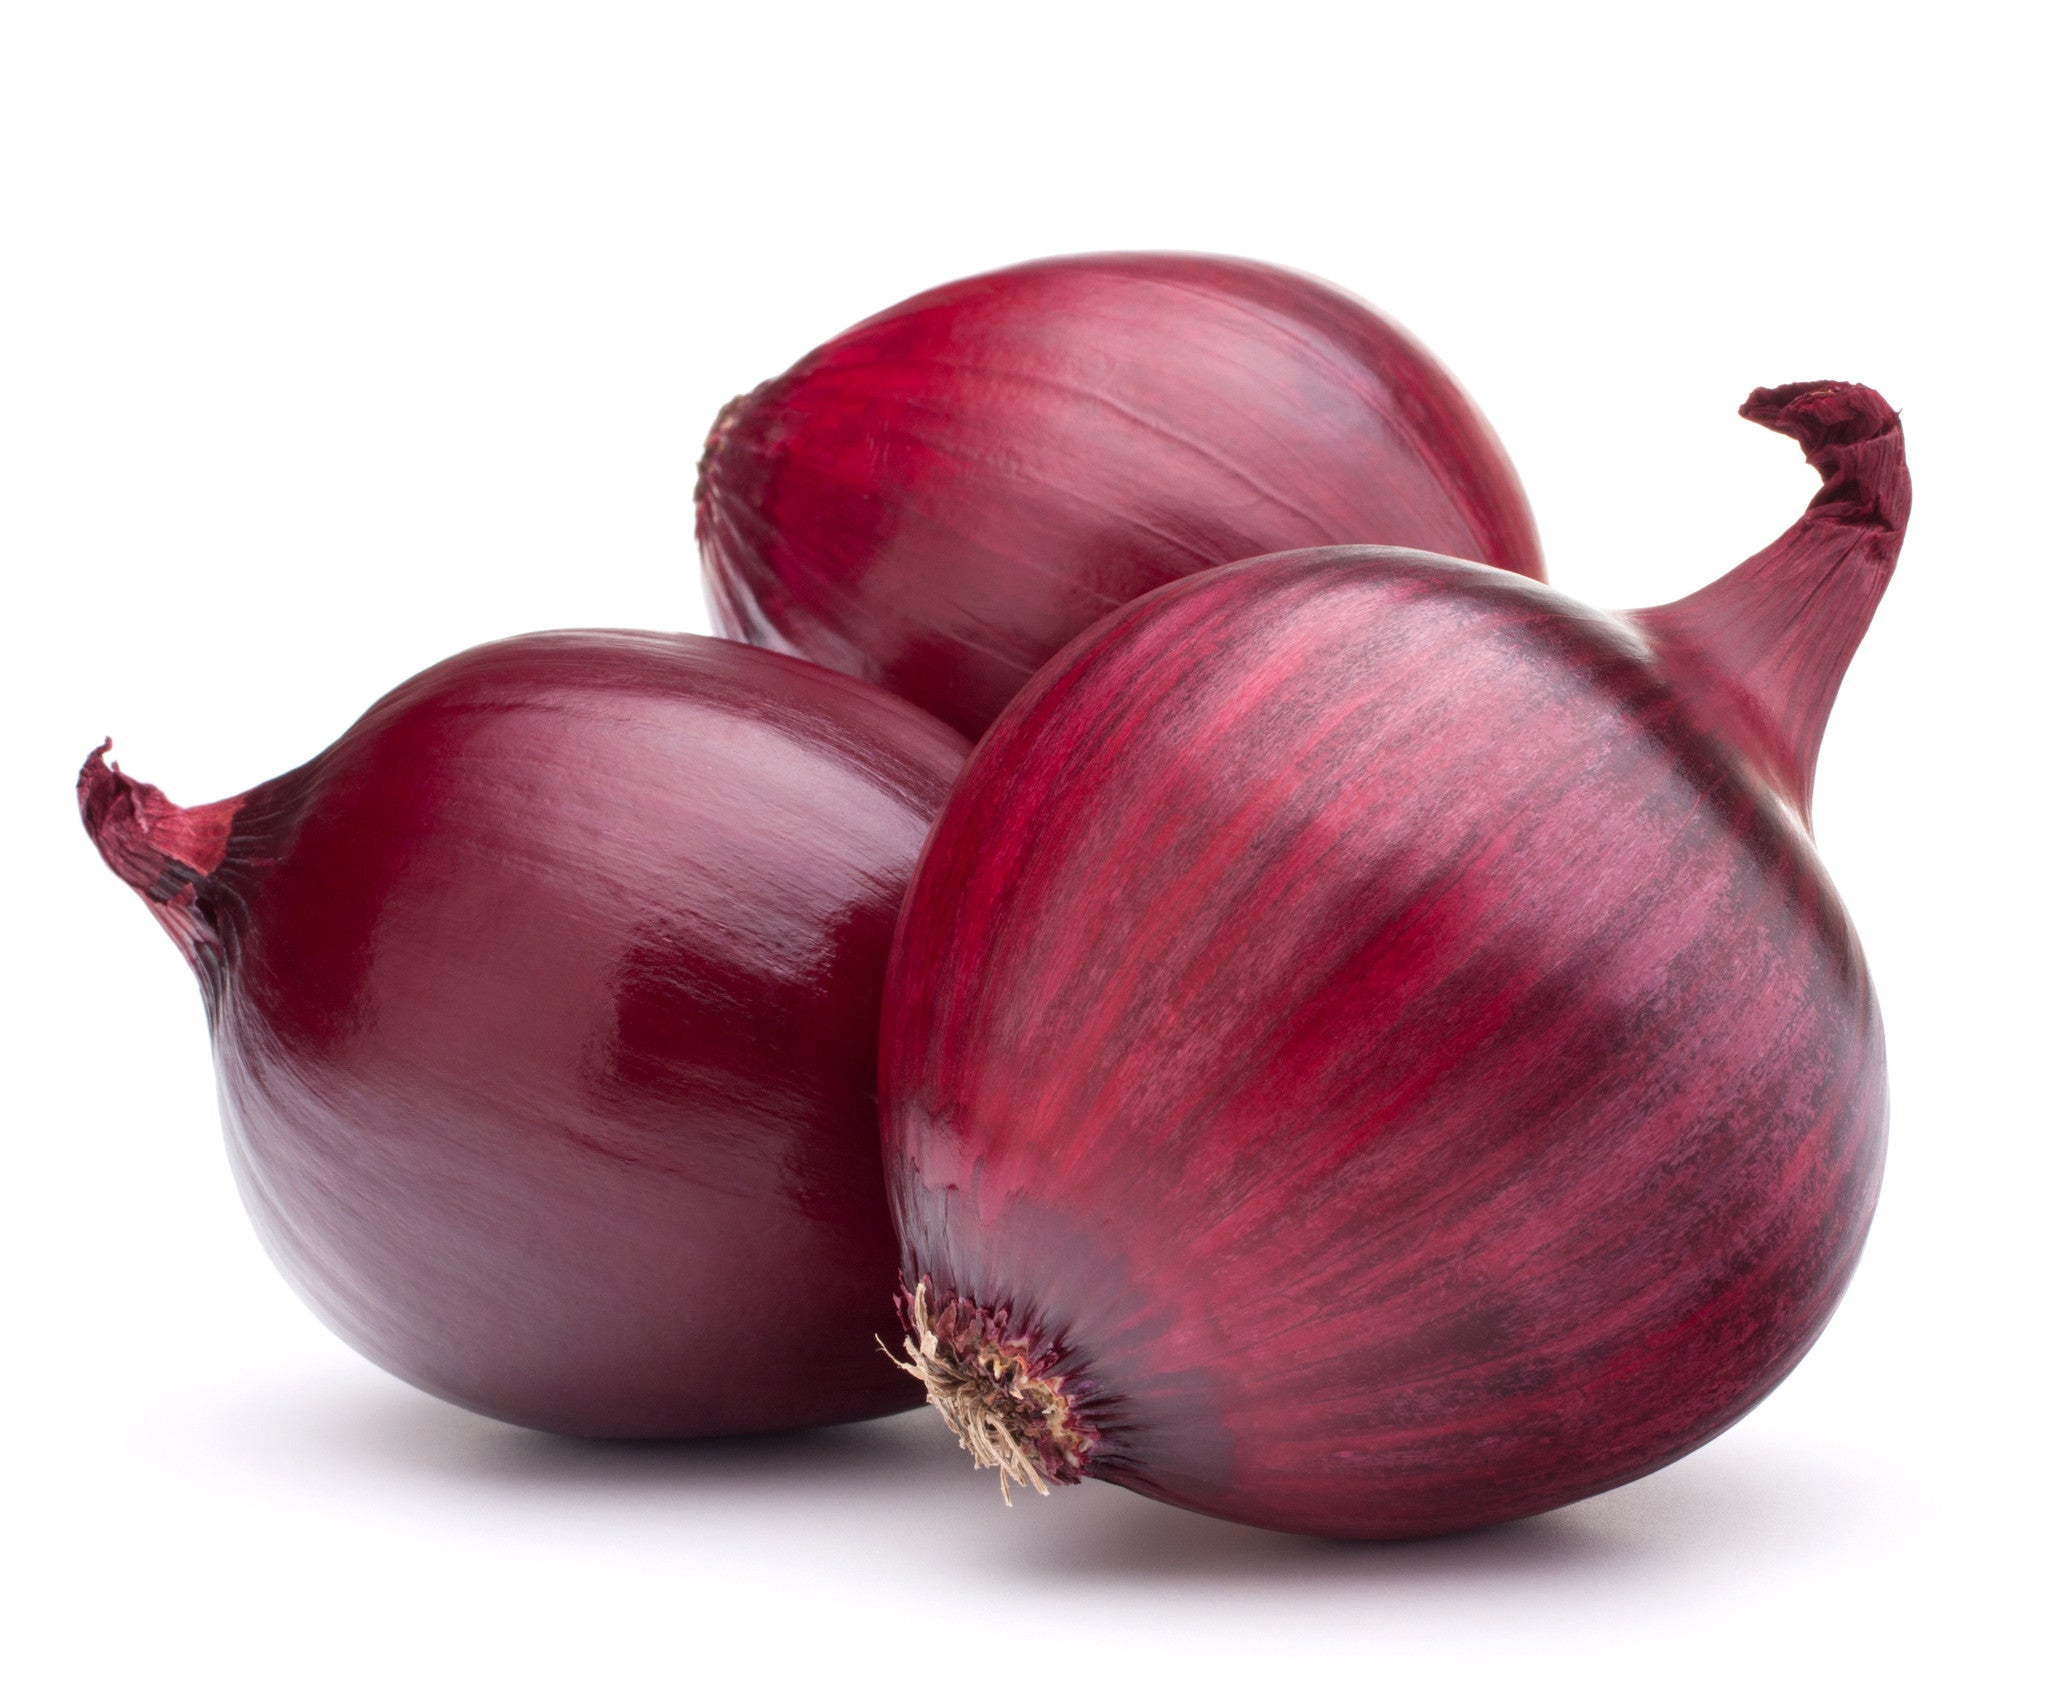 Onions (red)